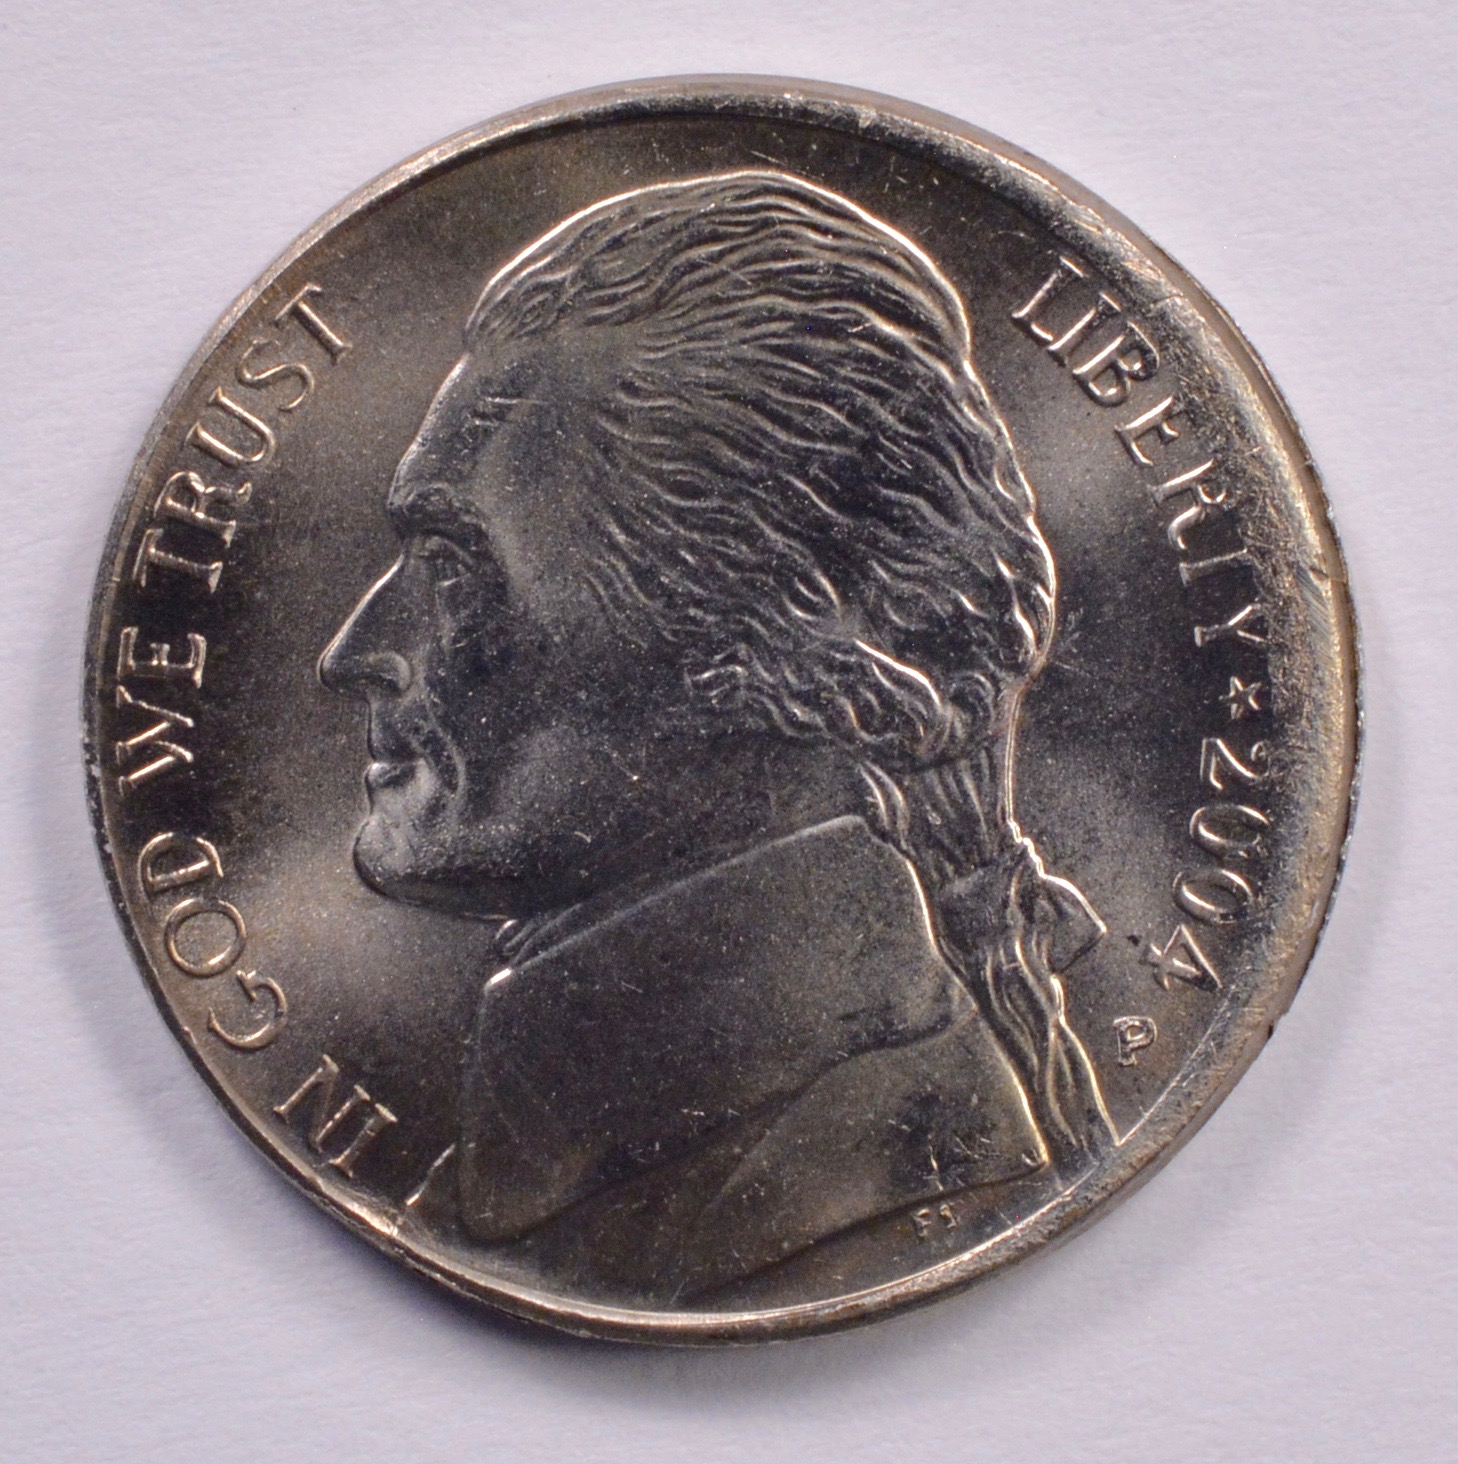 5c 2004-P Jefferson Nickel Broadstrike W/Collar Marks MS-66